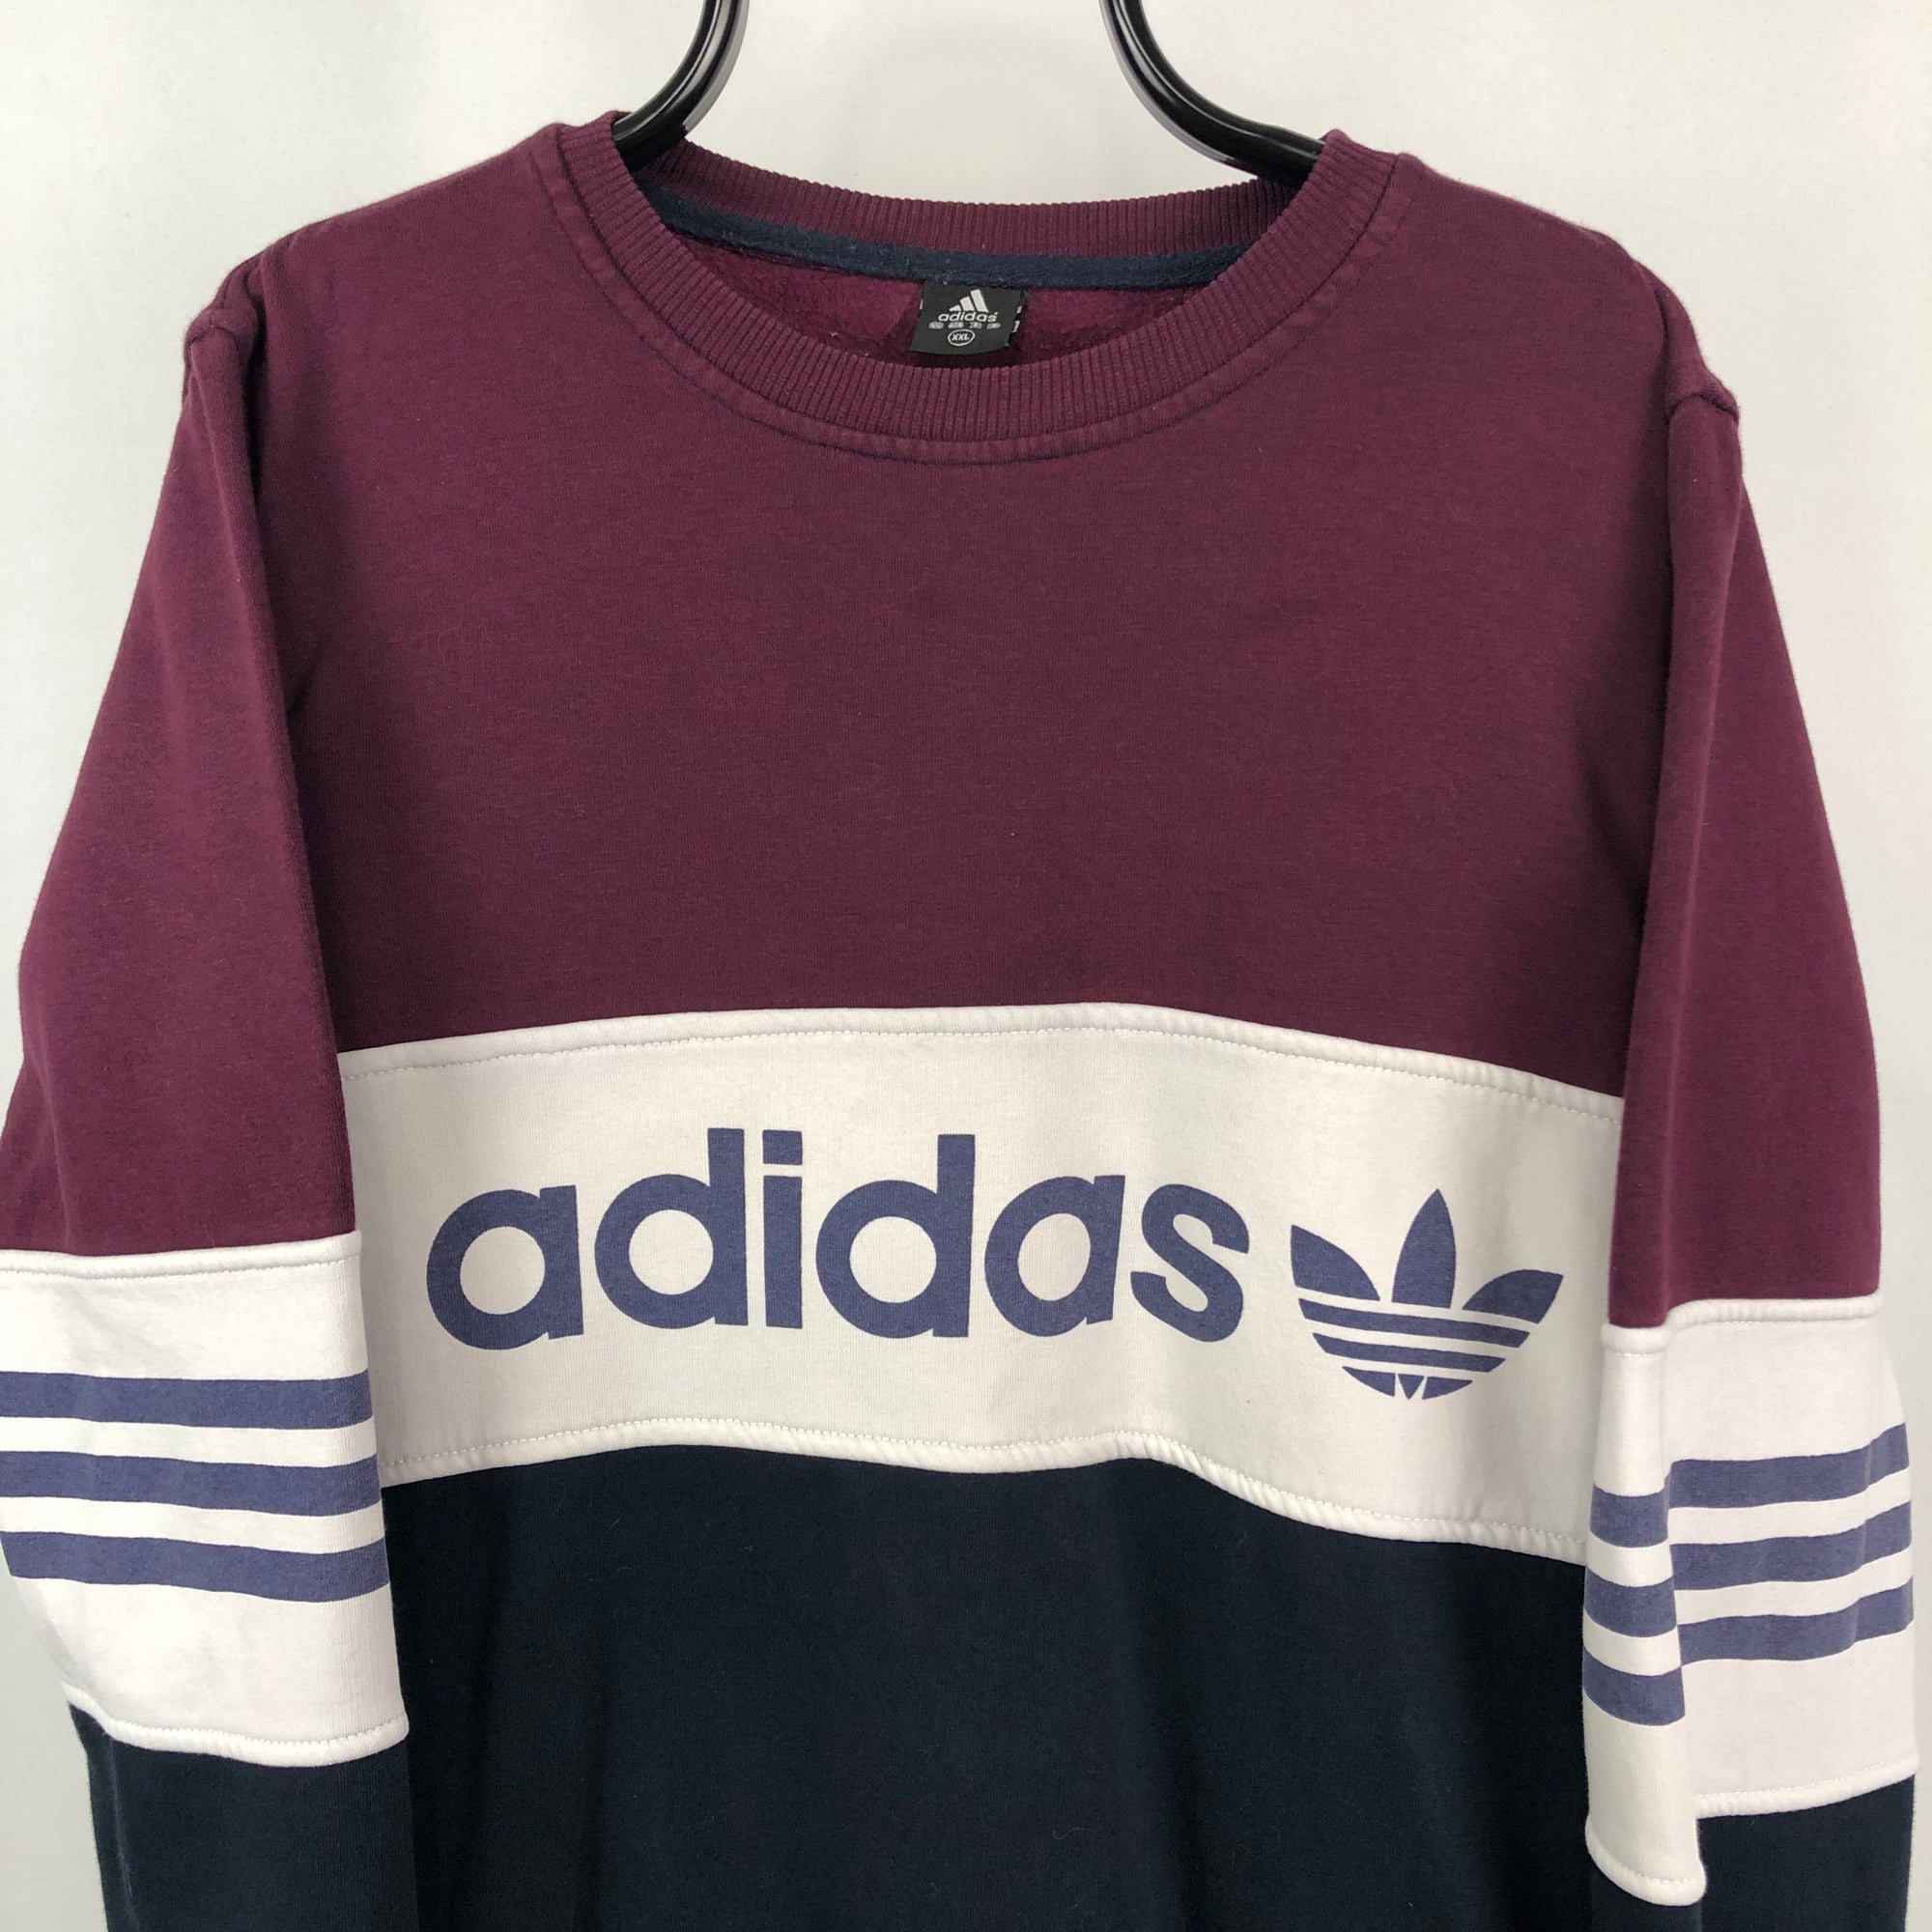 Vintage Adidas Colourblock Spellout Sweatshirt - Men's Medium/Women's Large